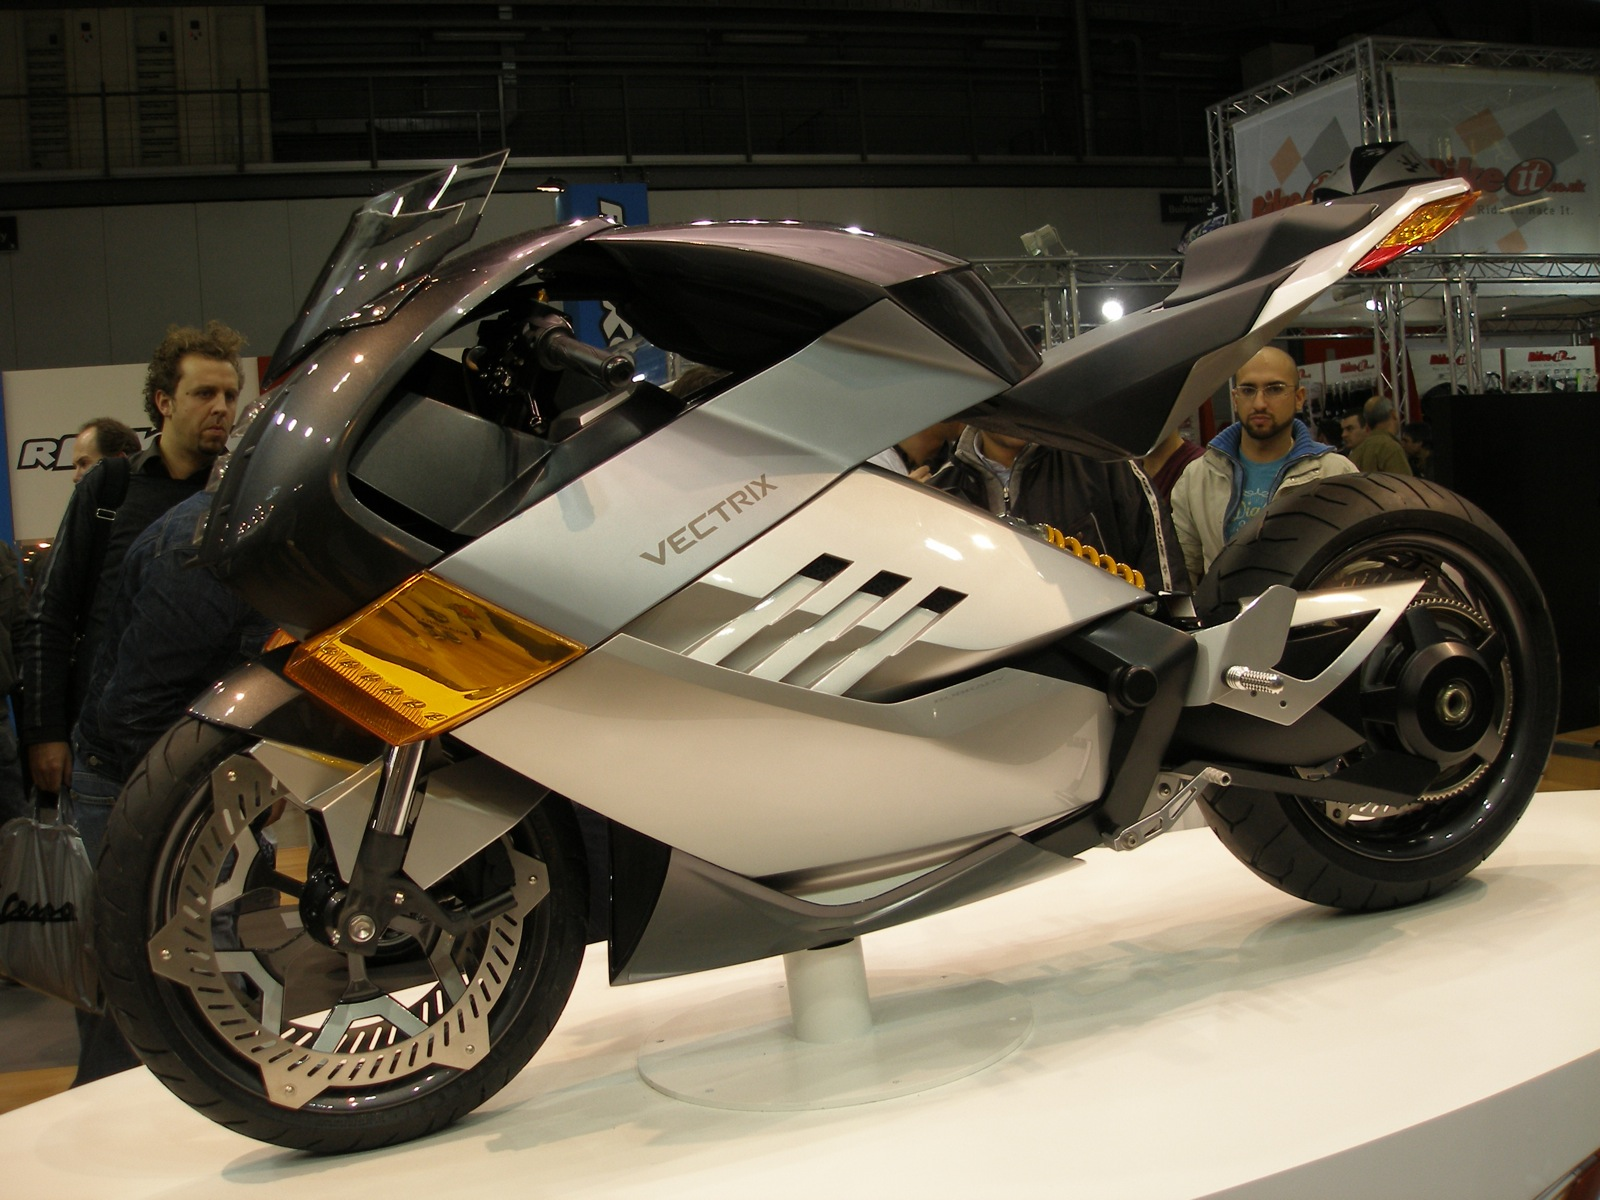 Vectrix superbike photo - 8